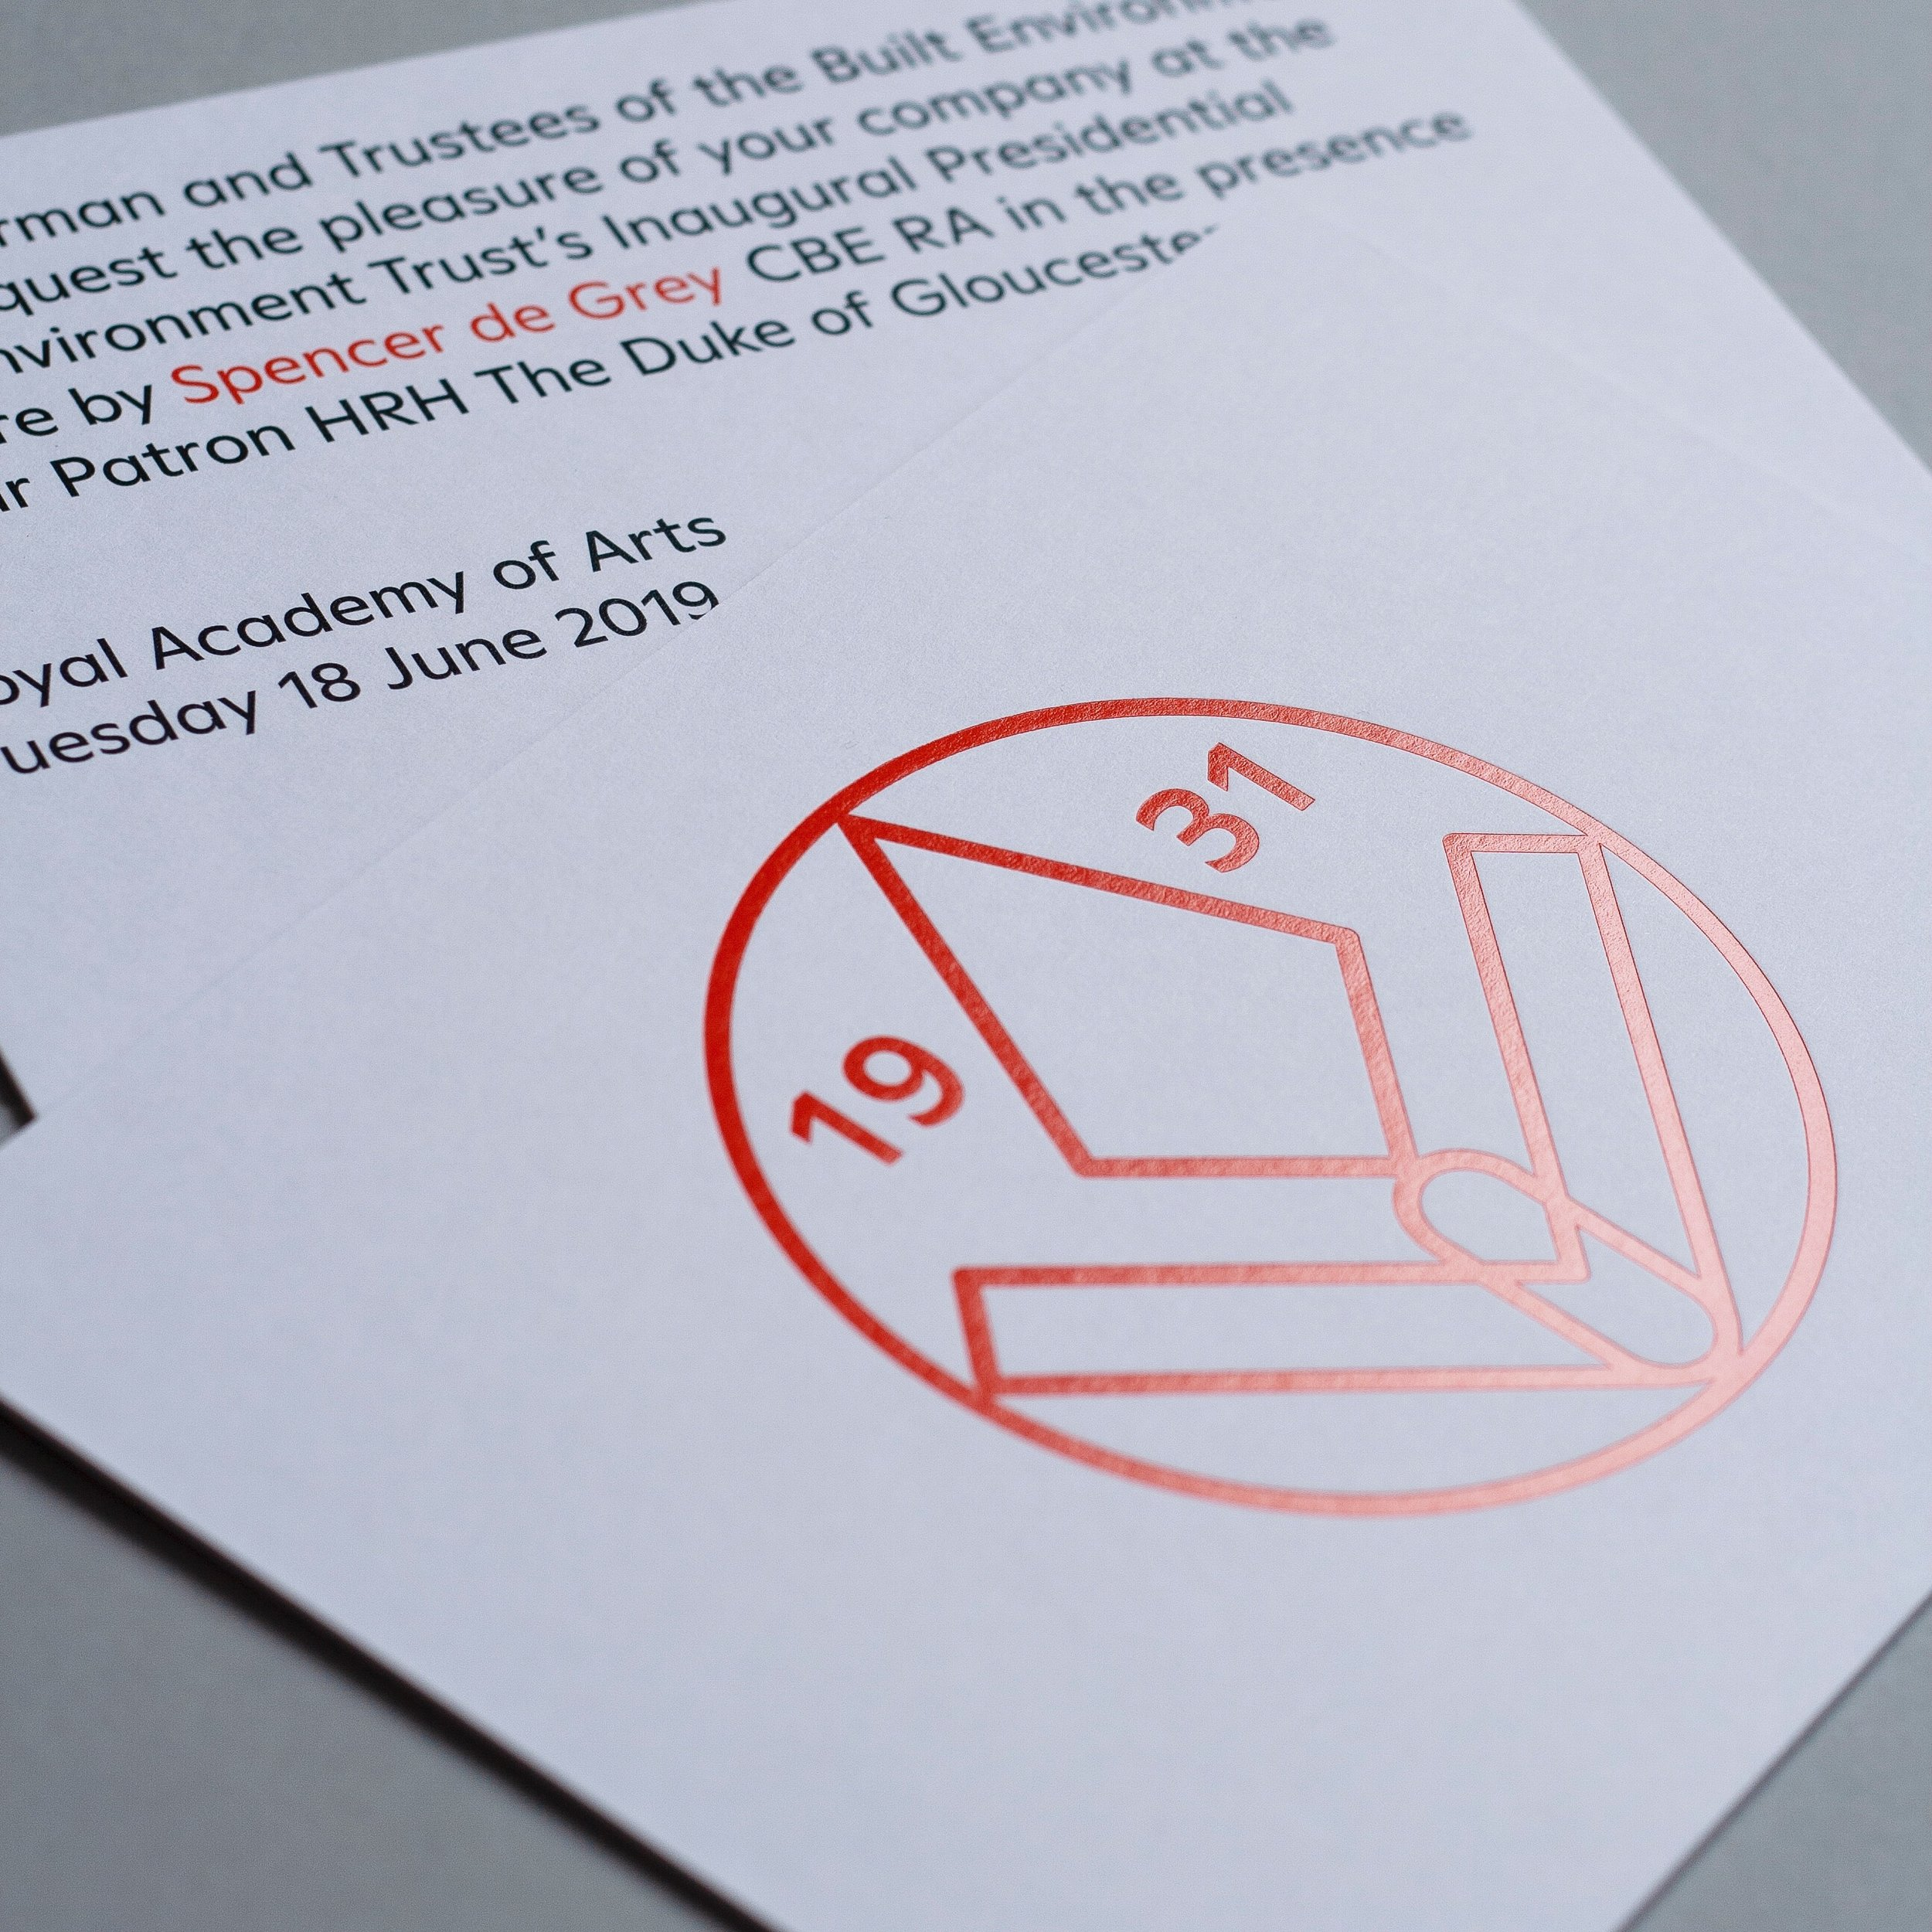 small resolution of invitations printed for the built environment trust on lace white 1050gsm senses paper foil stamping